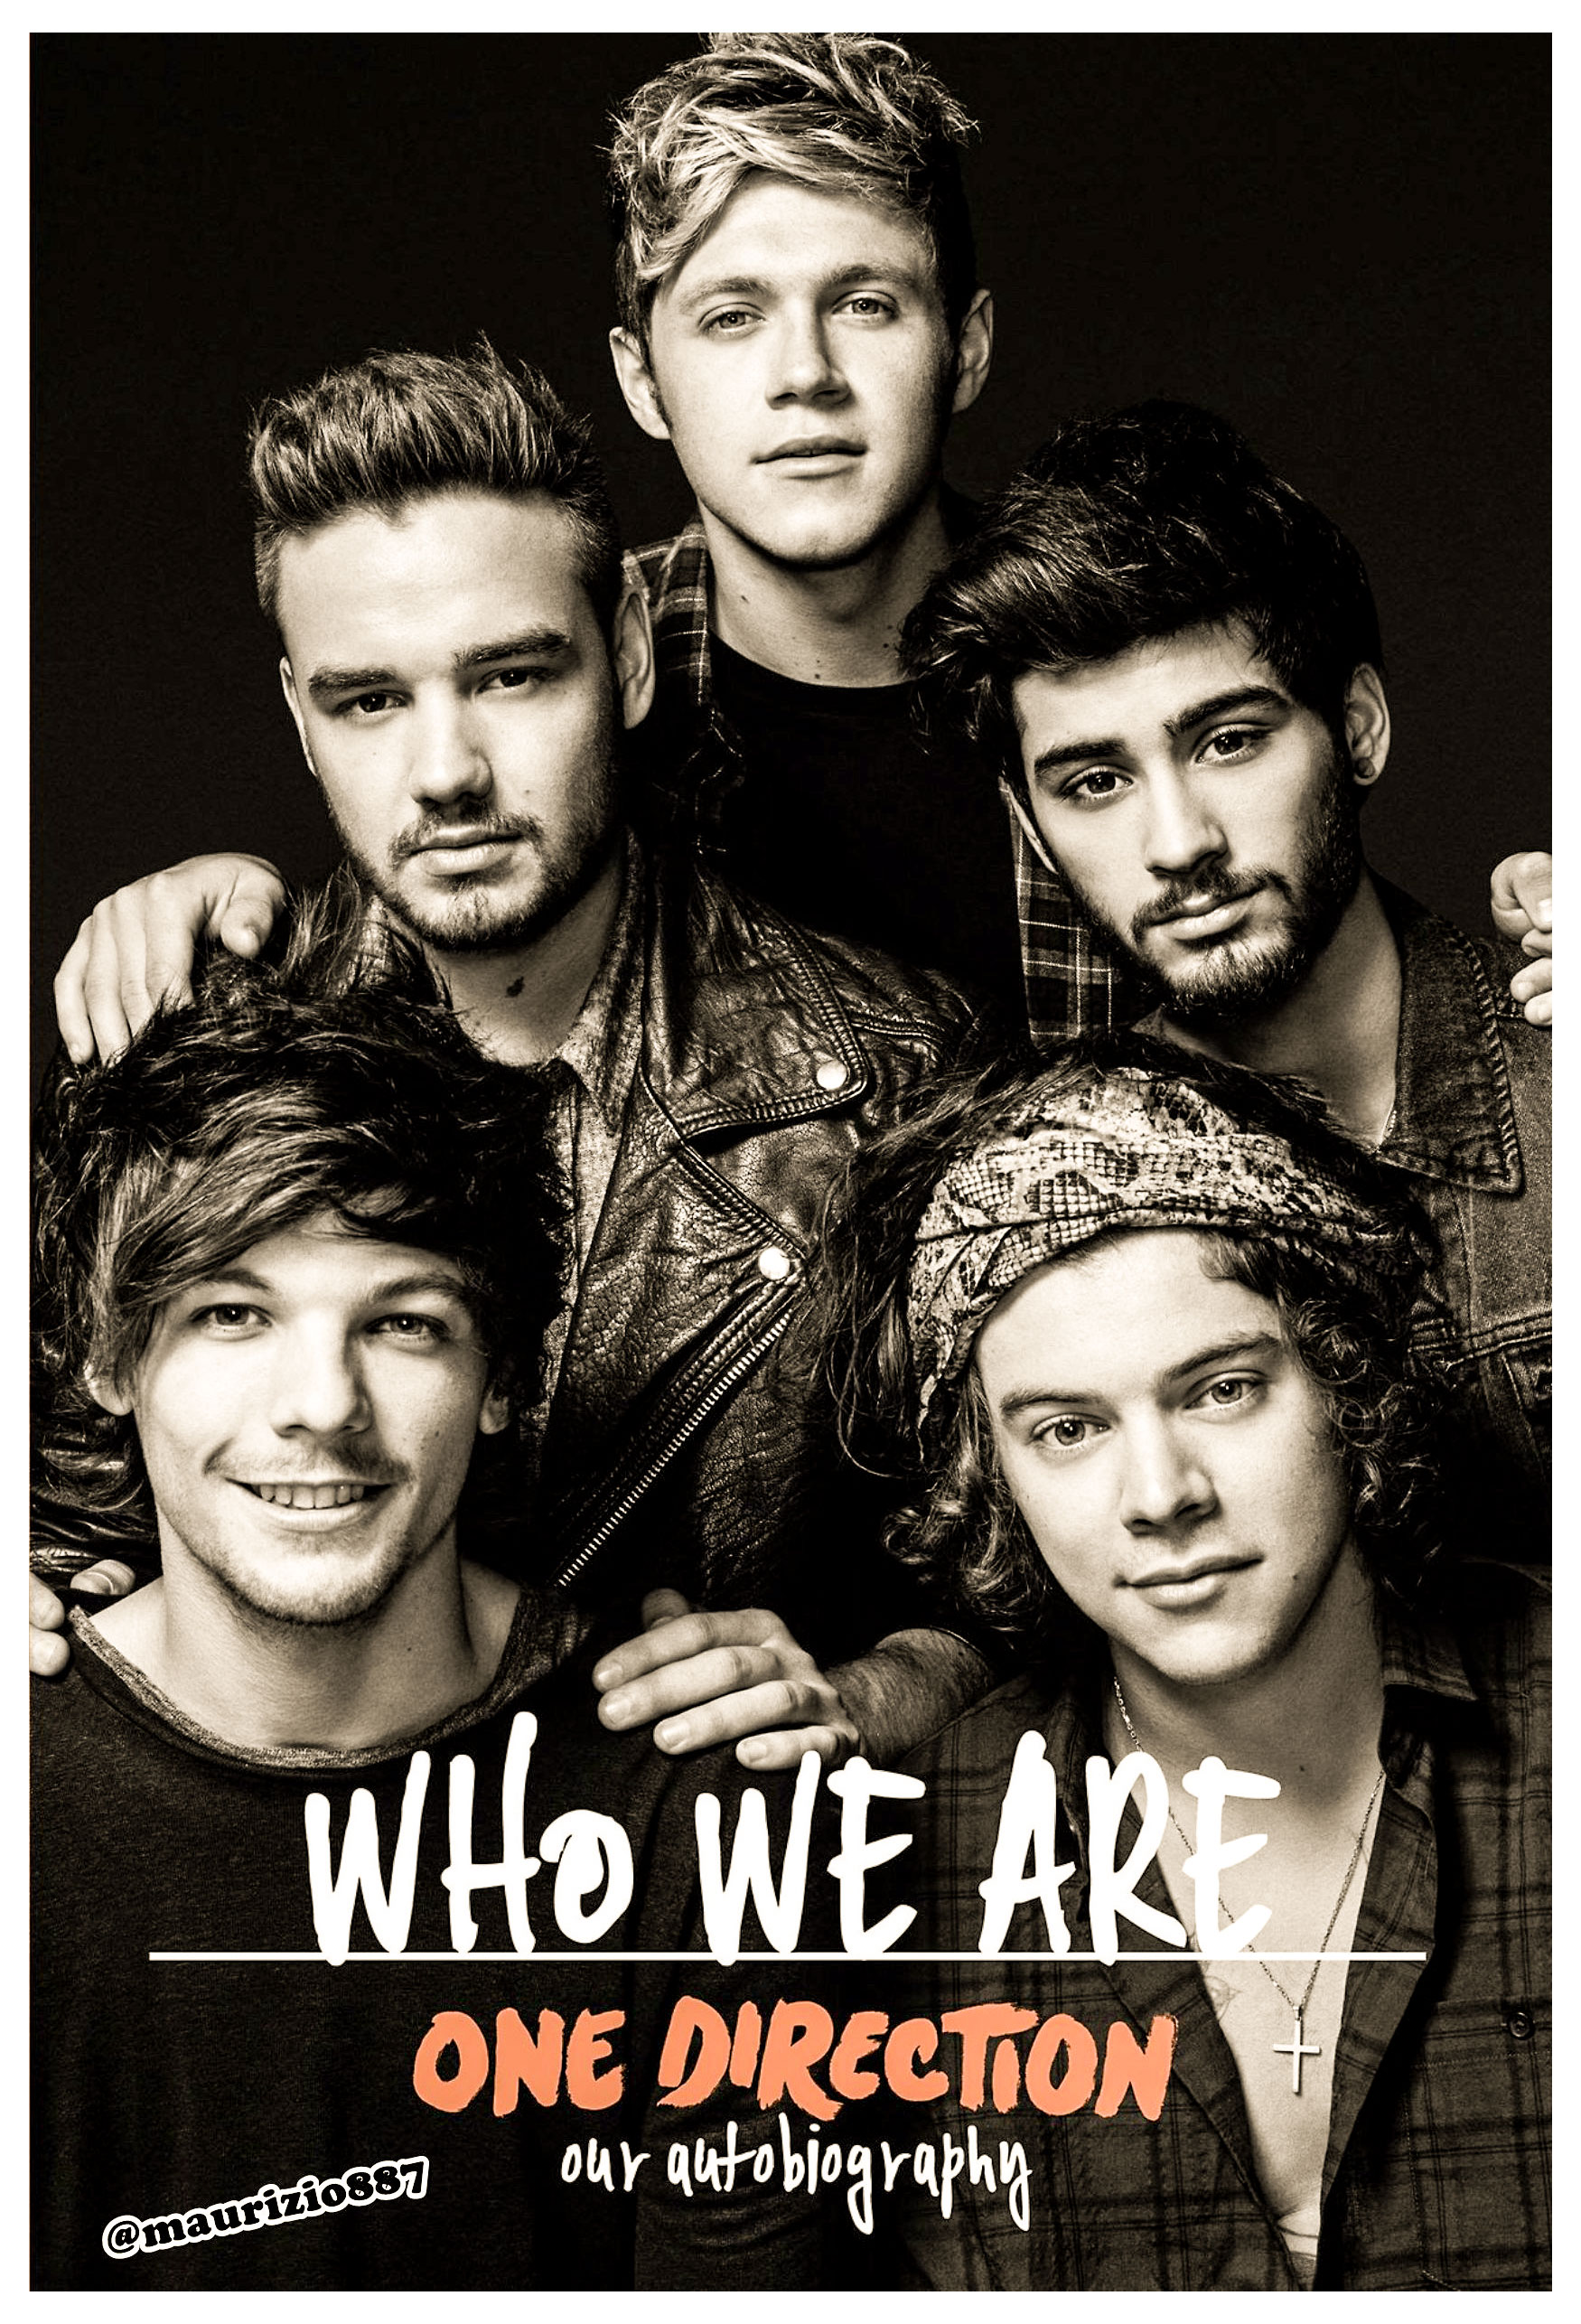 one-direction-photoshoot-2014-one-direction-37361350-1750-2572 jpgOne Direction Photoshoot 2014